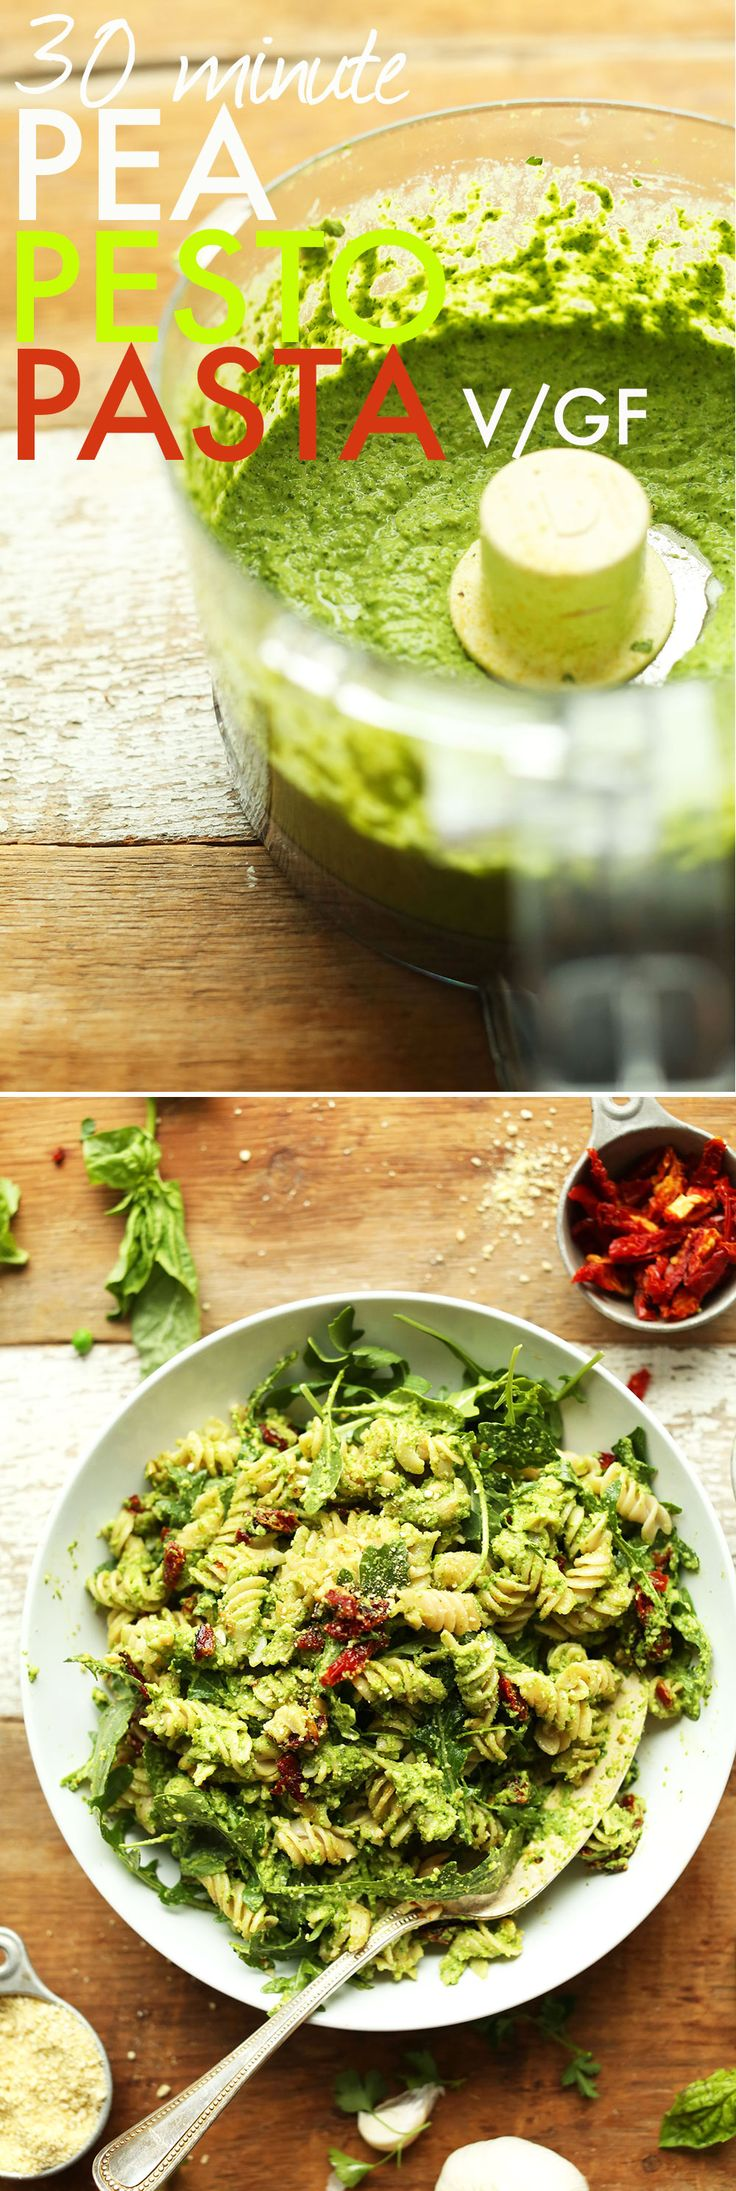 Amazing, 30-minute pea pesto pasta that's vegan, gluten free, and tossed with arugula and sun-dried tomatoes. A hearty, flavorful plant-based meal or side.